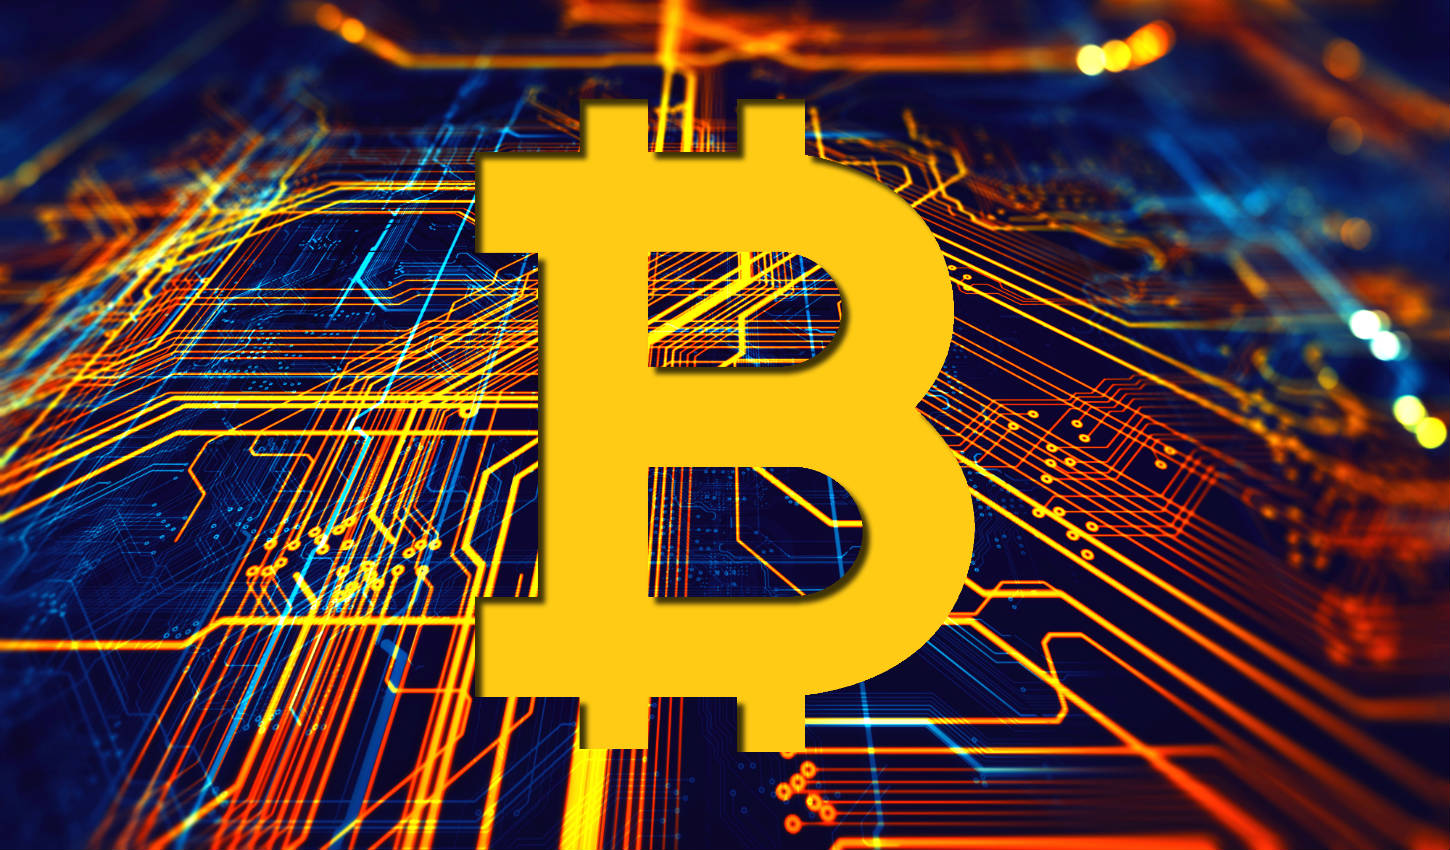 VanEck Announces New Push to Launch Bitcoin <bold>ETF</bold> Amid Changes at the SEC